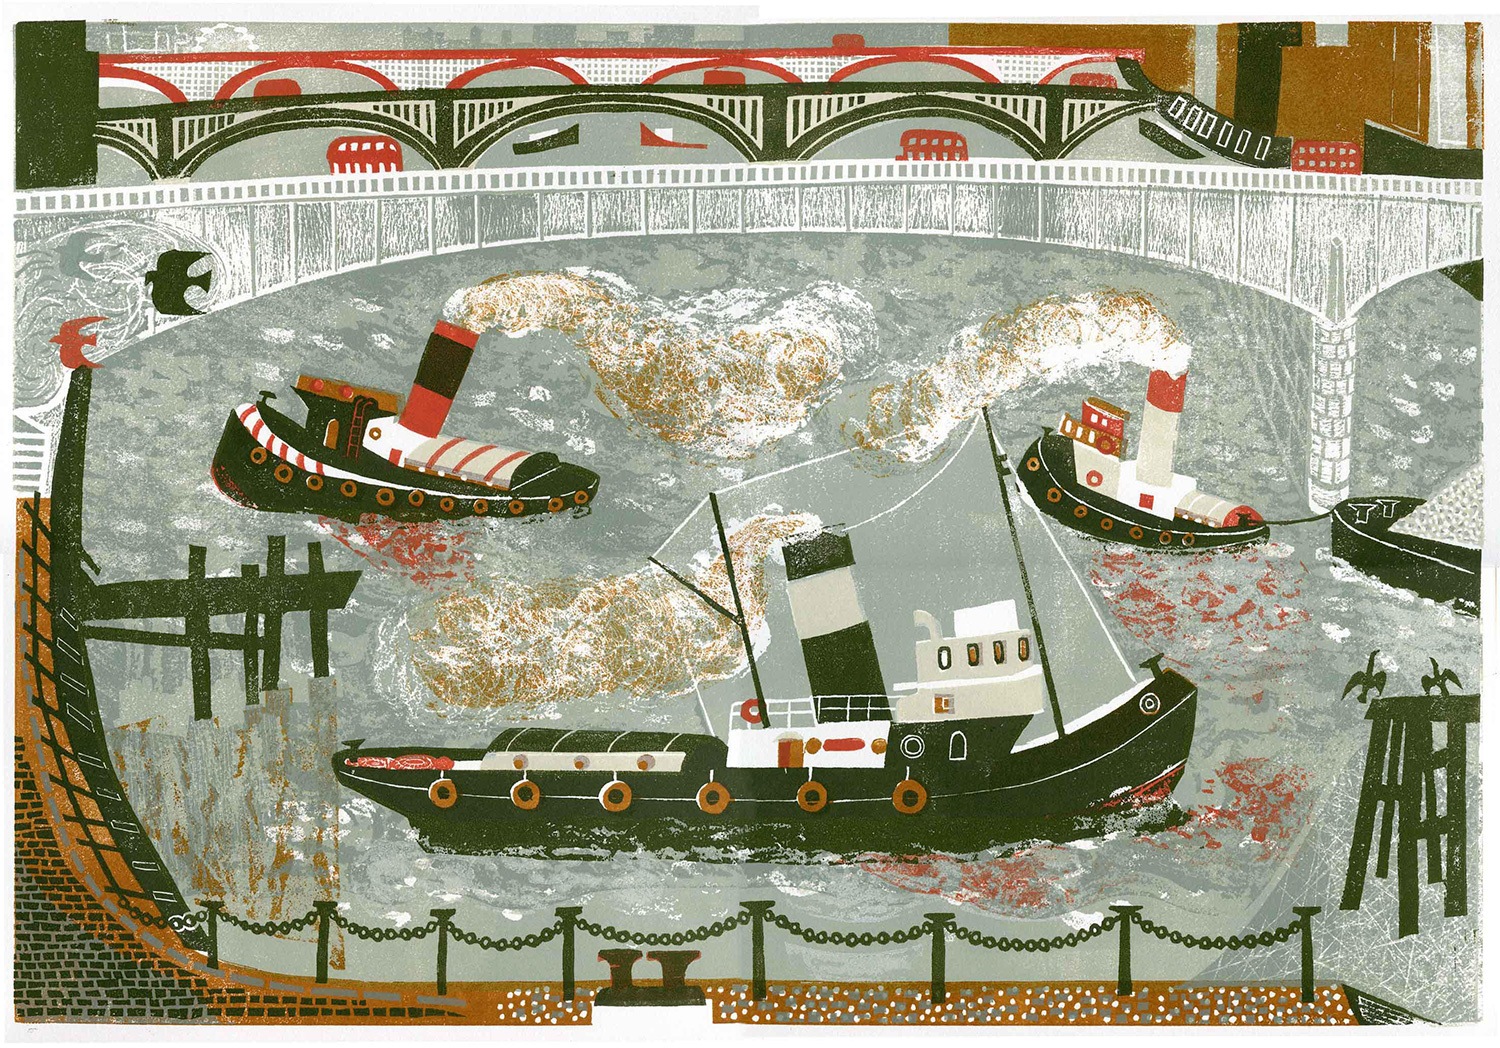 Tugboats on the Thames by Melvyn Evans